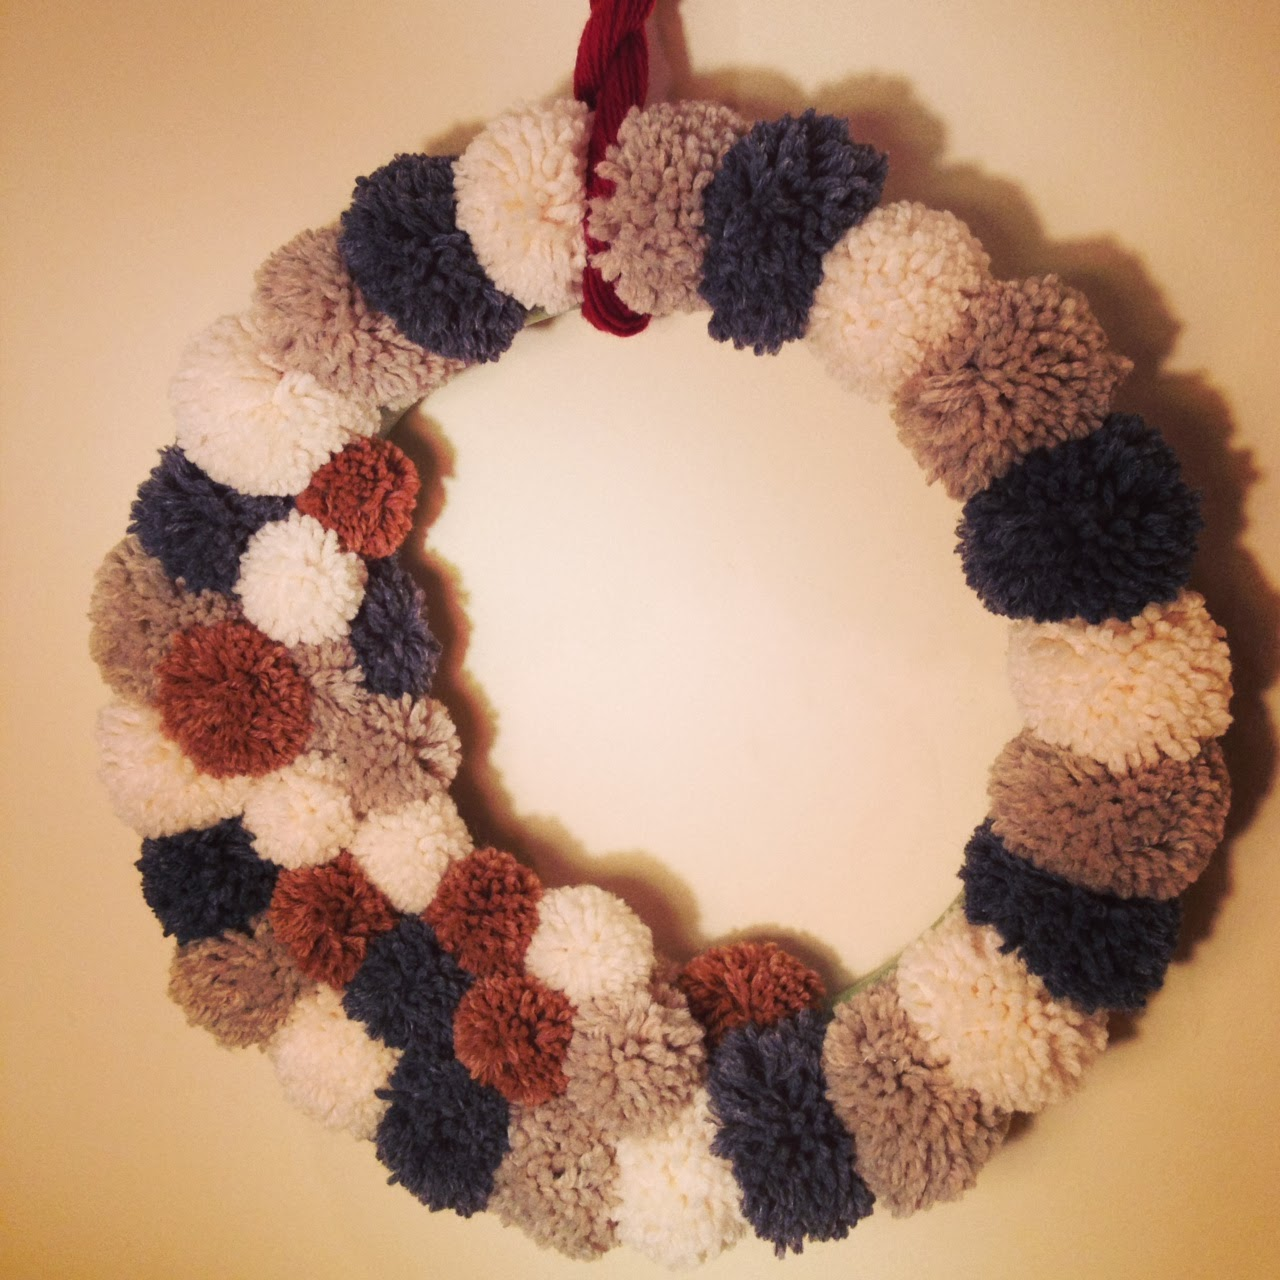 Stashbuster: Cozy winter yarn wreath